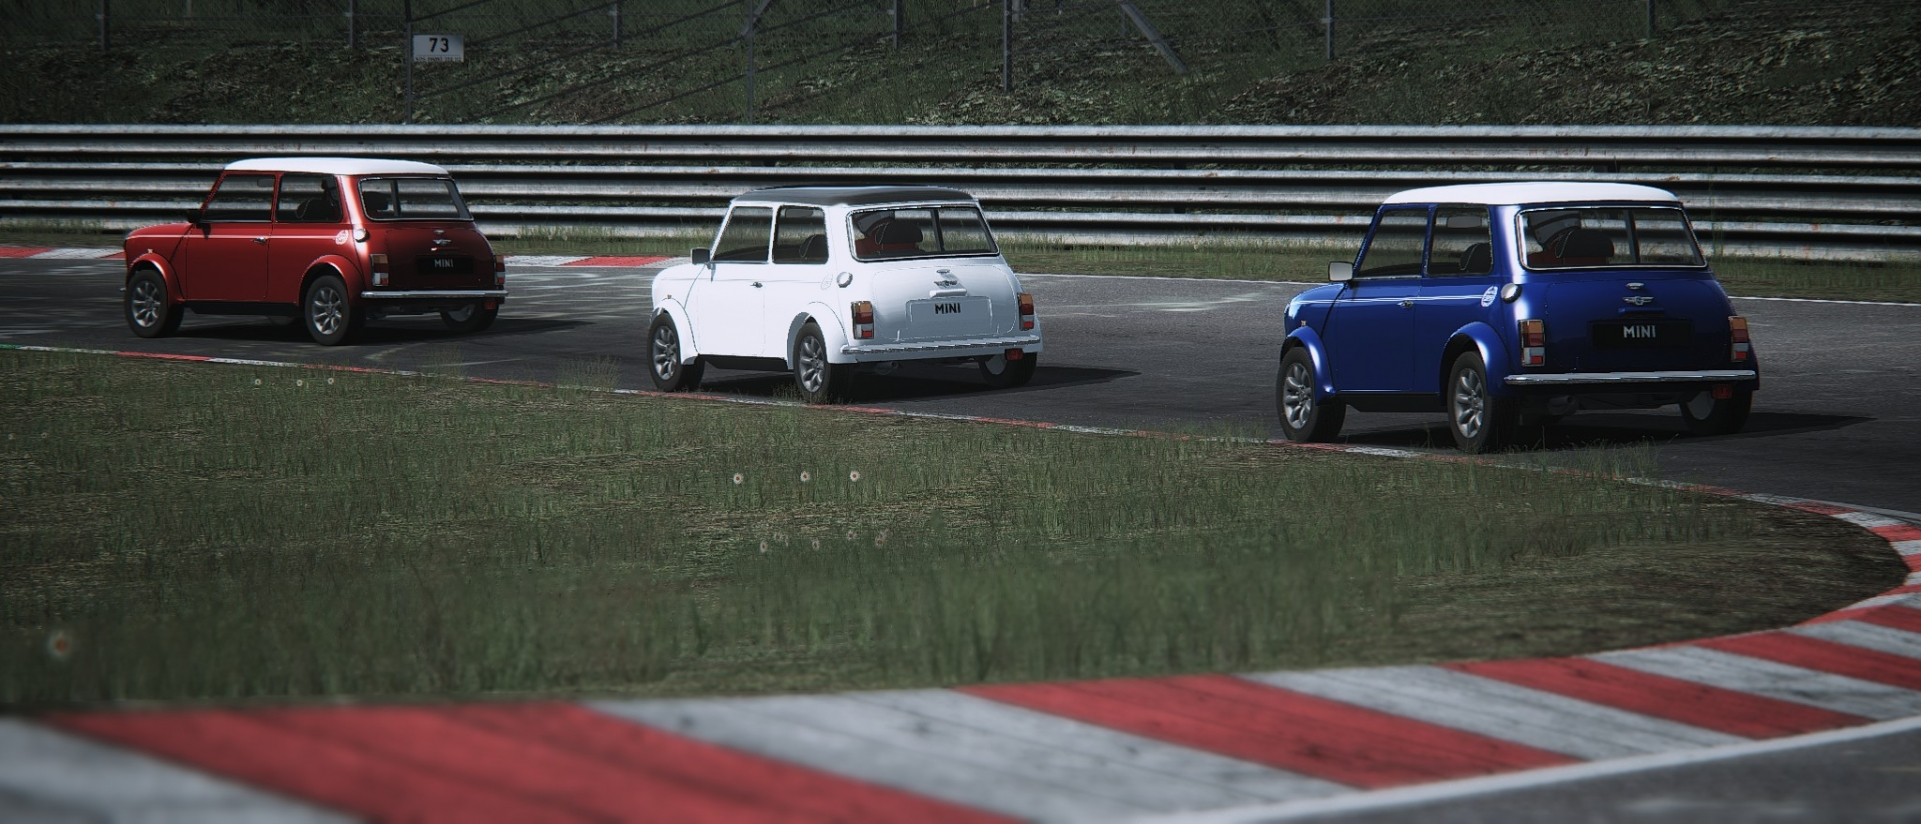 Assetto Corsa - Mini Cooper 1.3 Green Hell 04